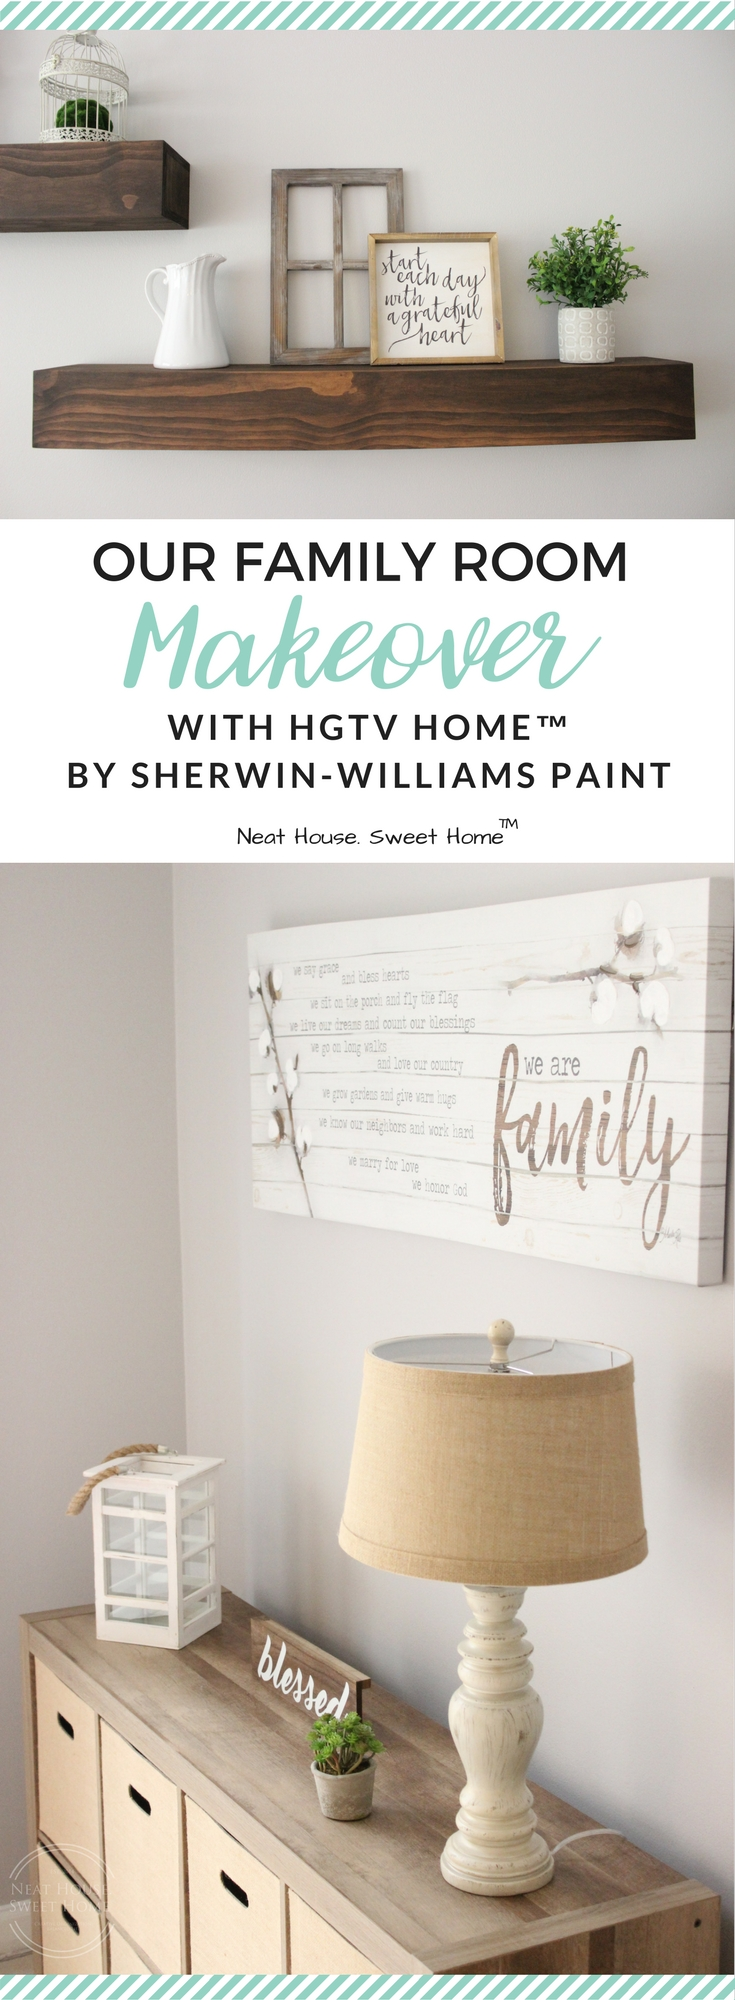 A family room breathes new life with HGTV HOME™ by Sherwin-Williams paint. @HGTVHOMEbySW #HGTVHOMEbySW #Sponsored